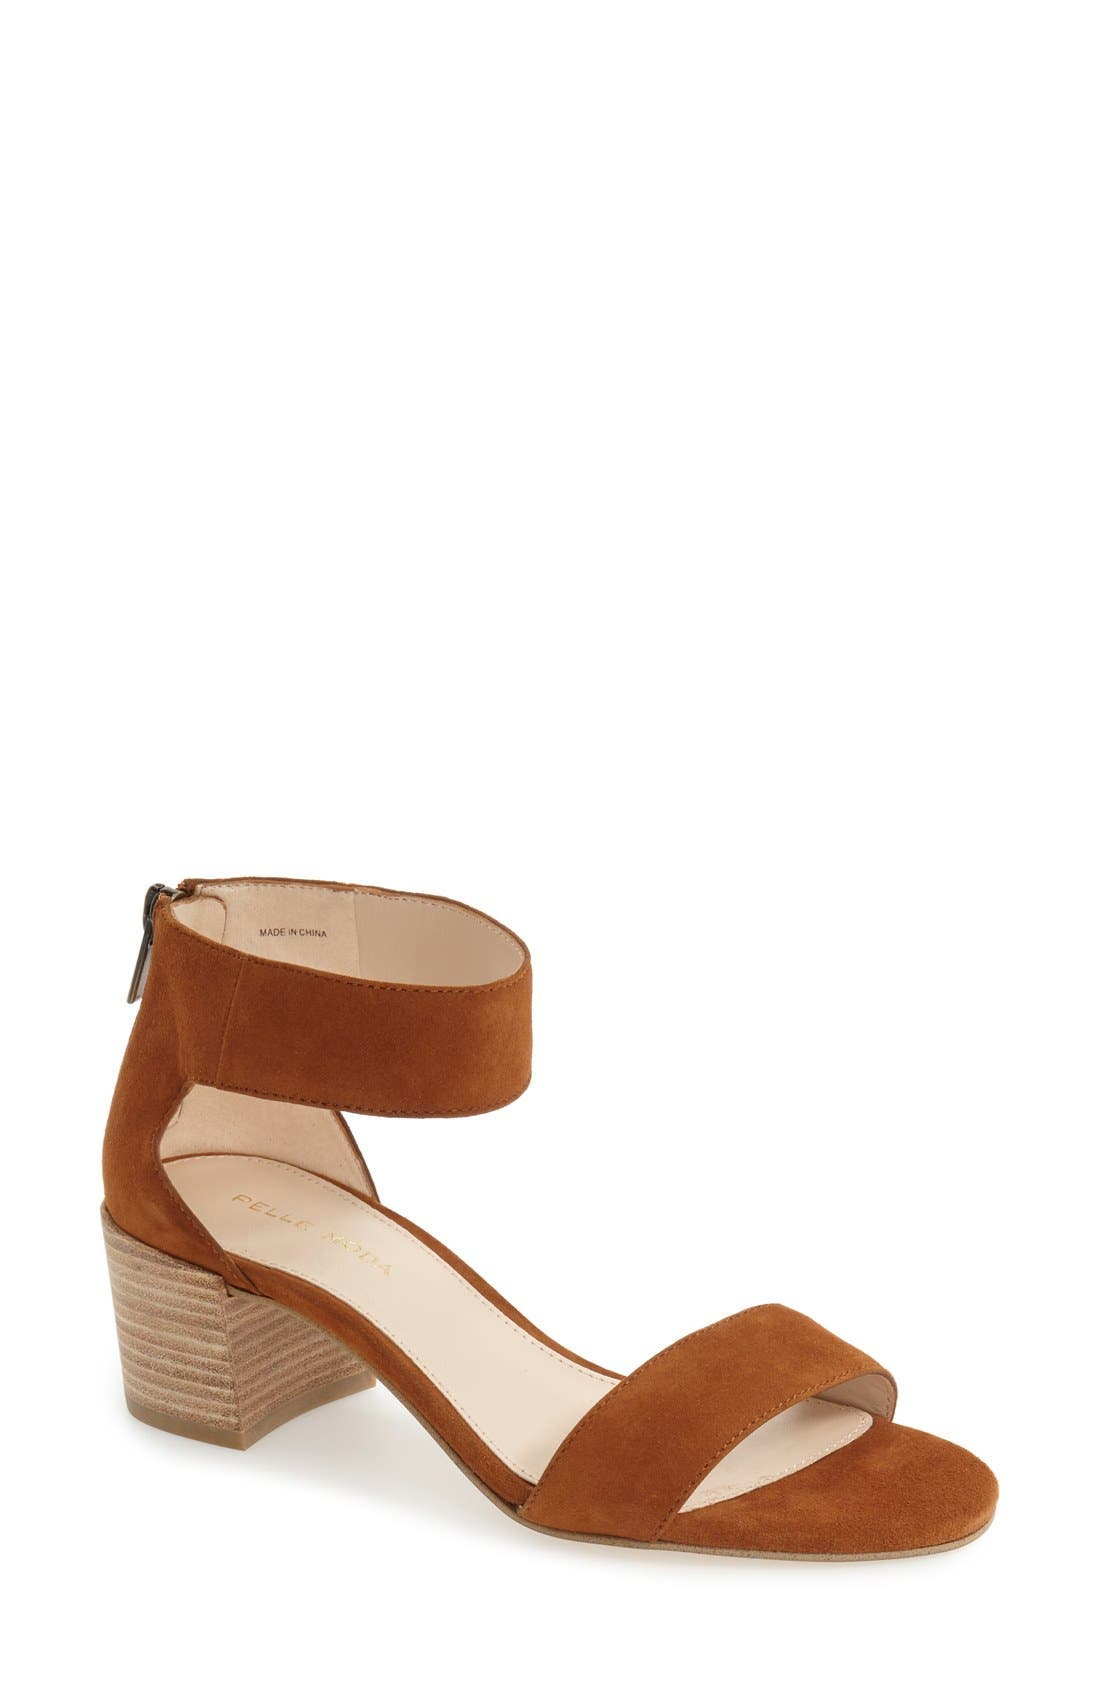 Alternate Image 1 Selected - Pella Moda 'Urban' Block Heel Sandal (Women)